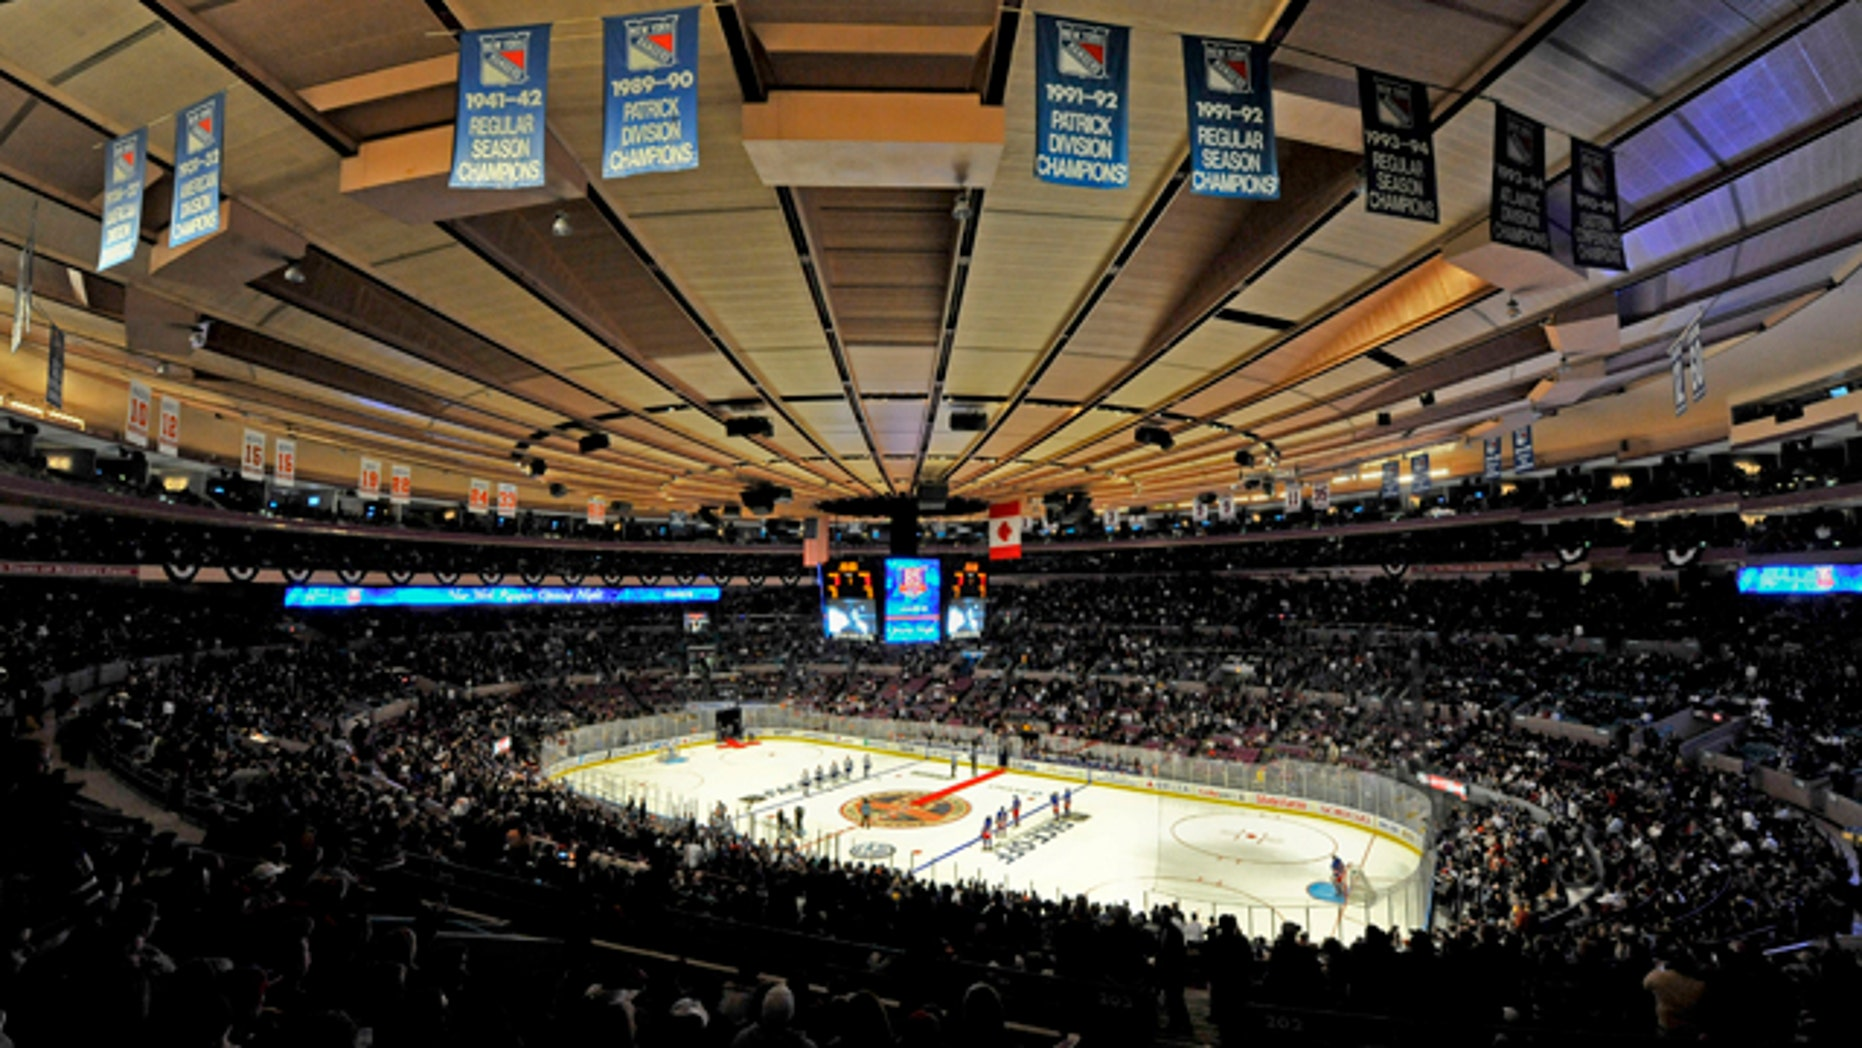 Oct. 15: The New York Rangers and the Toronto Maple Leafs line up for the singing of the each team's national anthems during opening night of the Rangers' NHL hockey season at Madison Square Garden in New York.